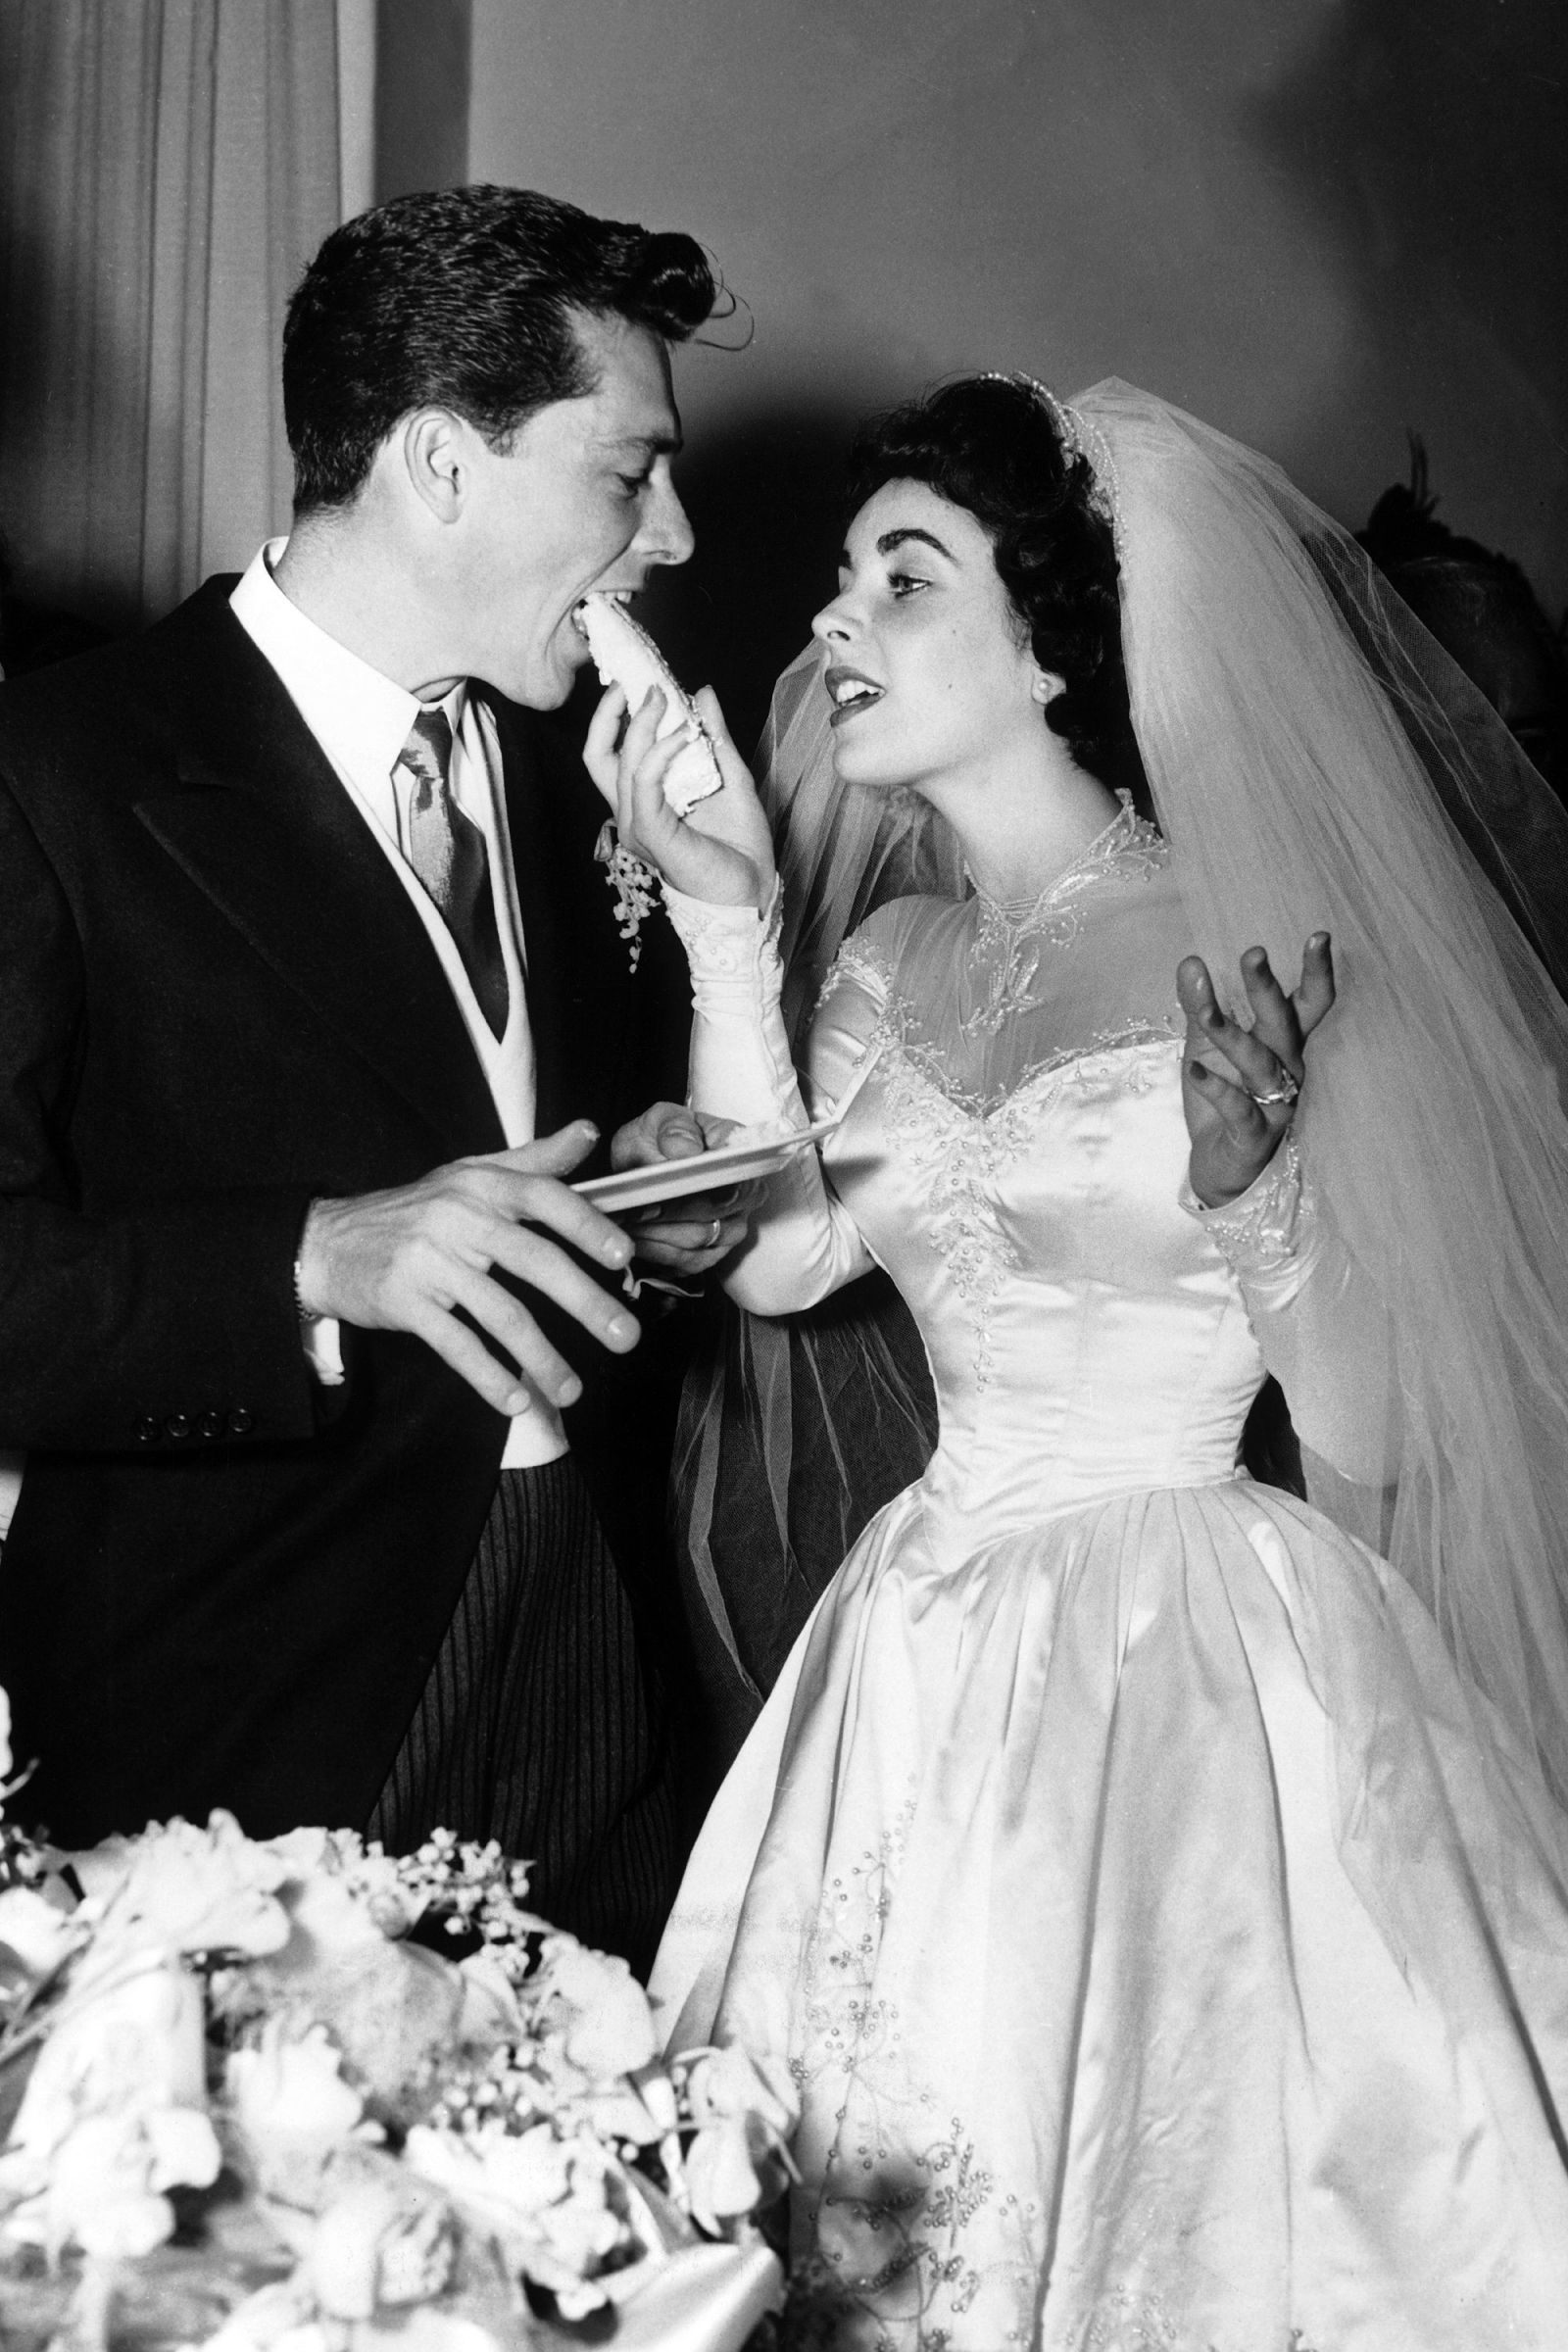 The 50 Most Iconic Wedding Gowns In History Helen rose Wedding